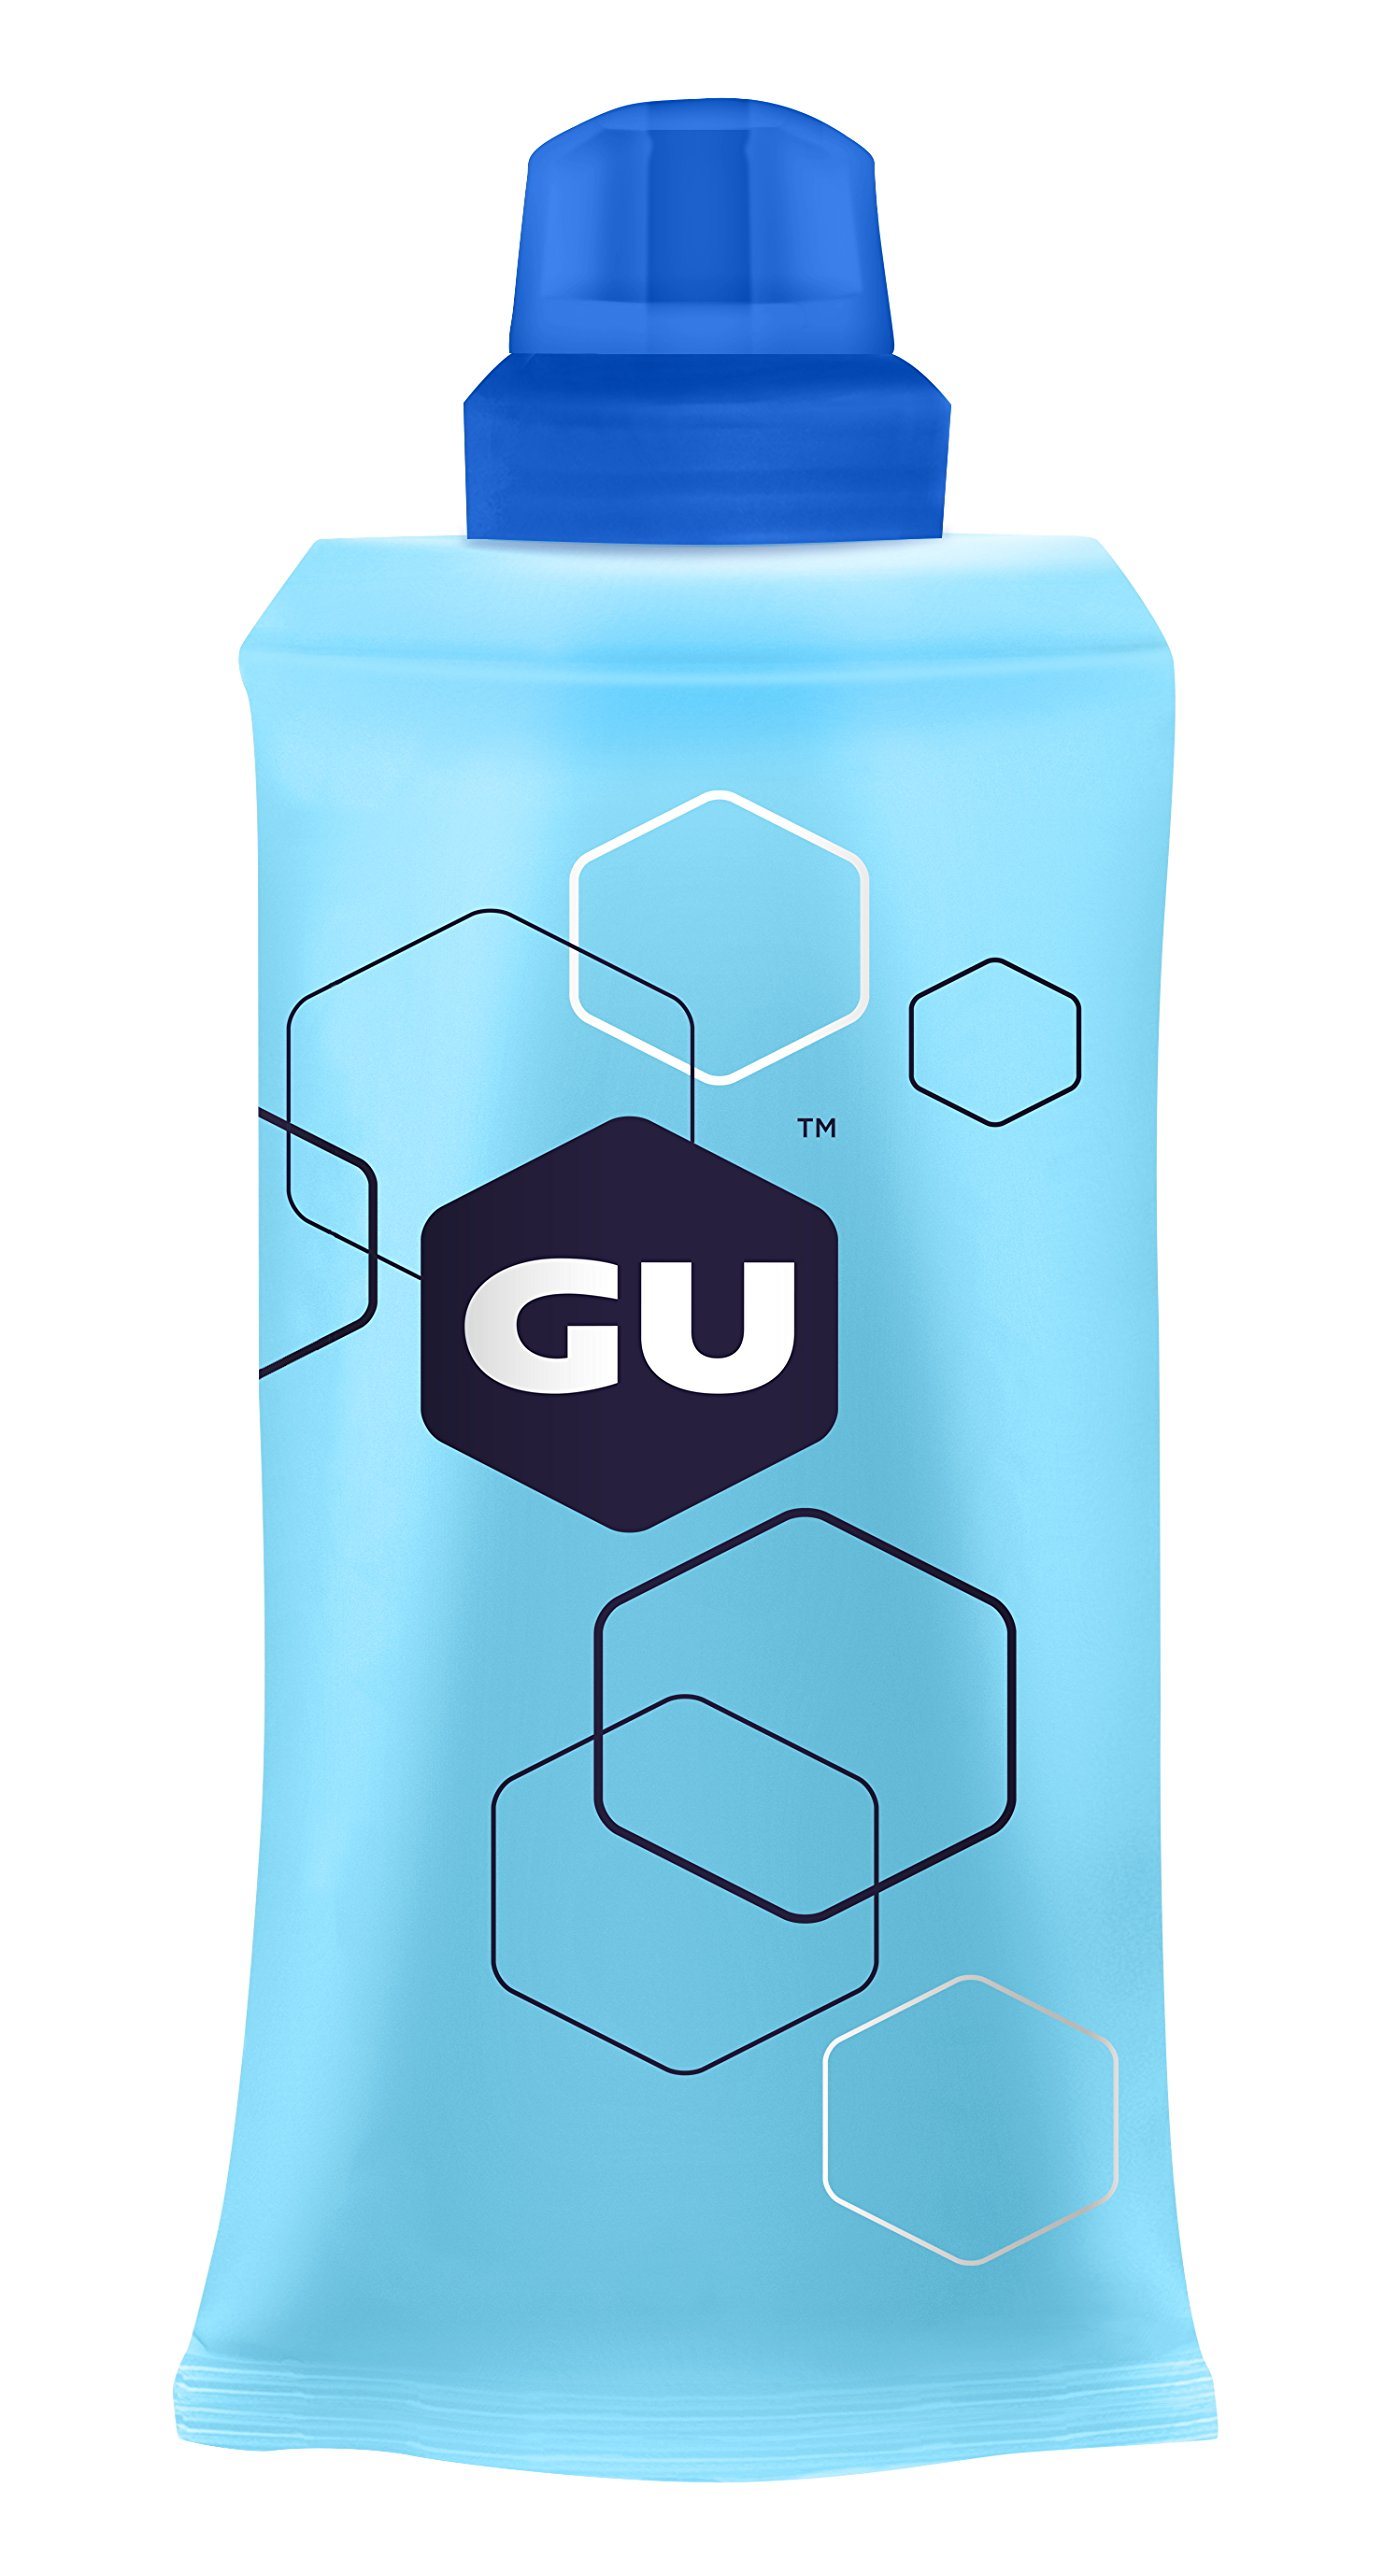 GU Energy Labs Refillable Flask for Sports Nutrition Energy Gel, 5.5 Ounce